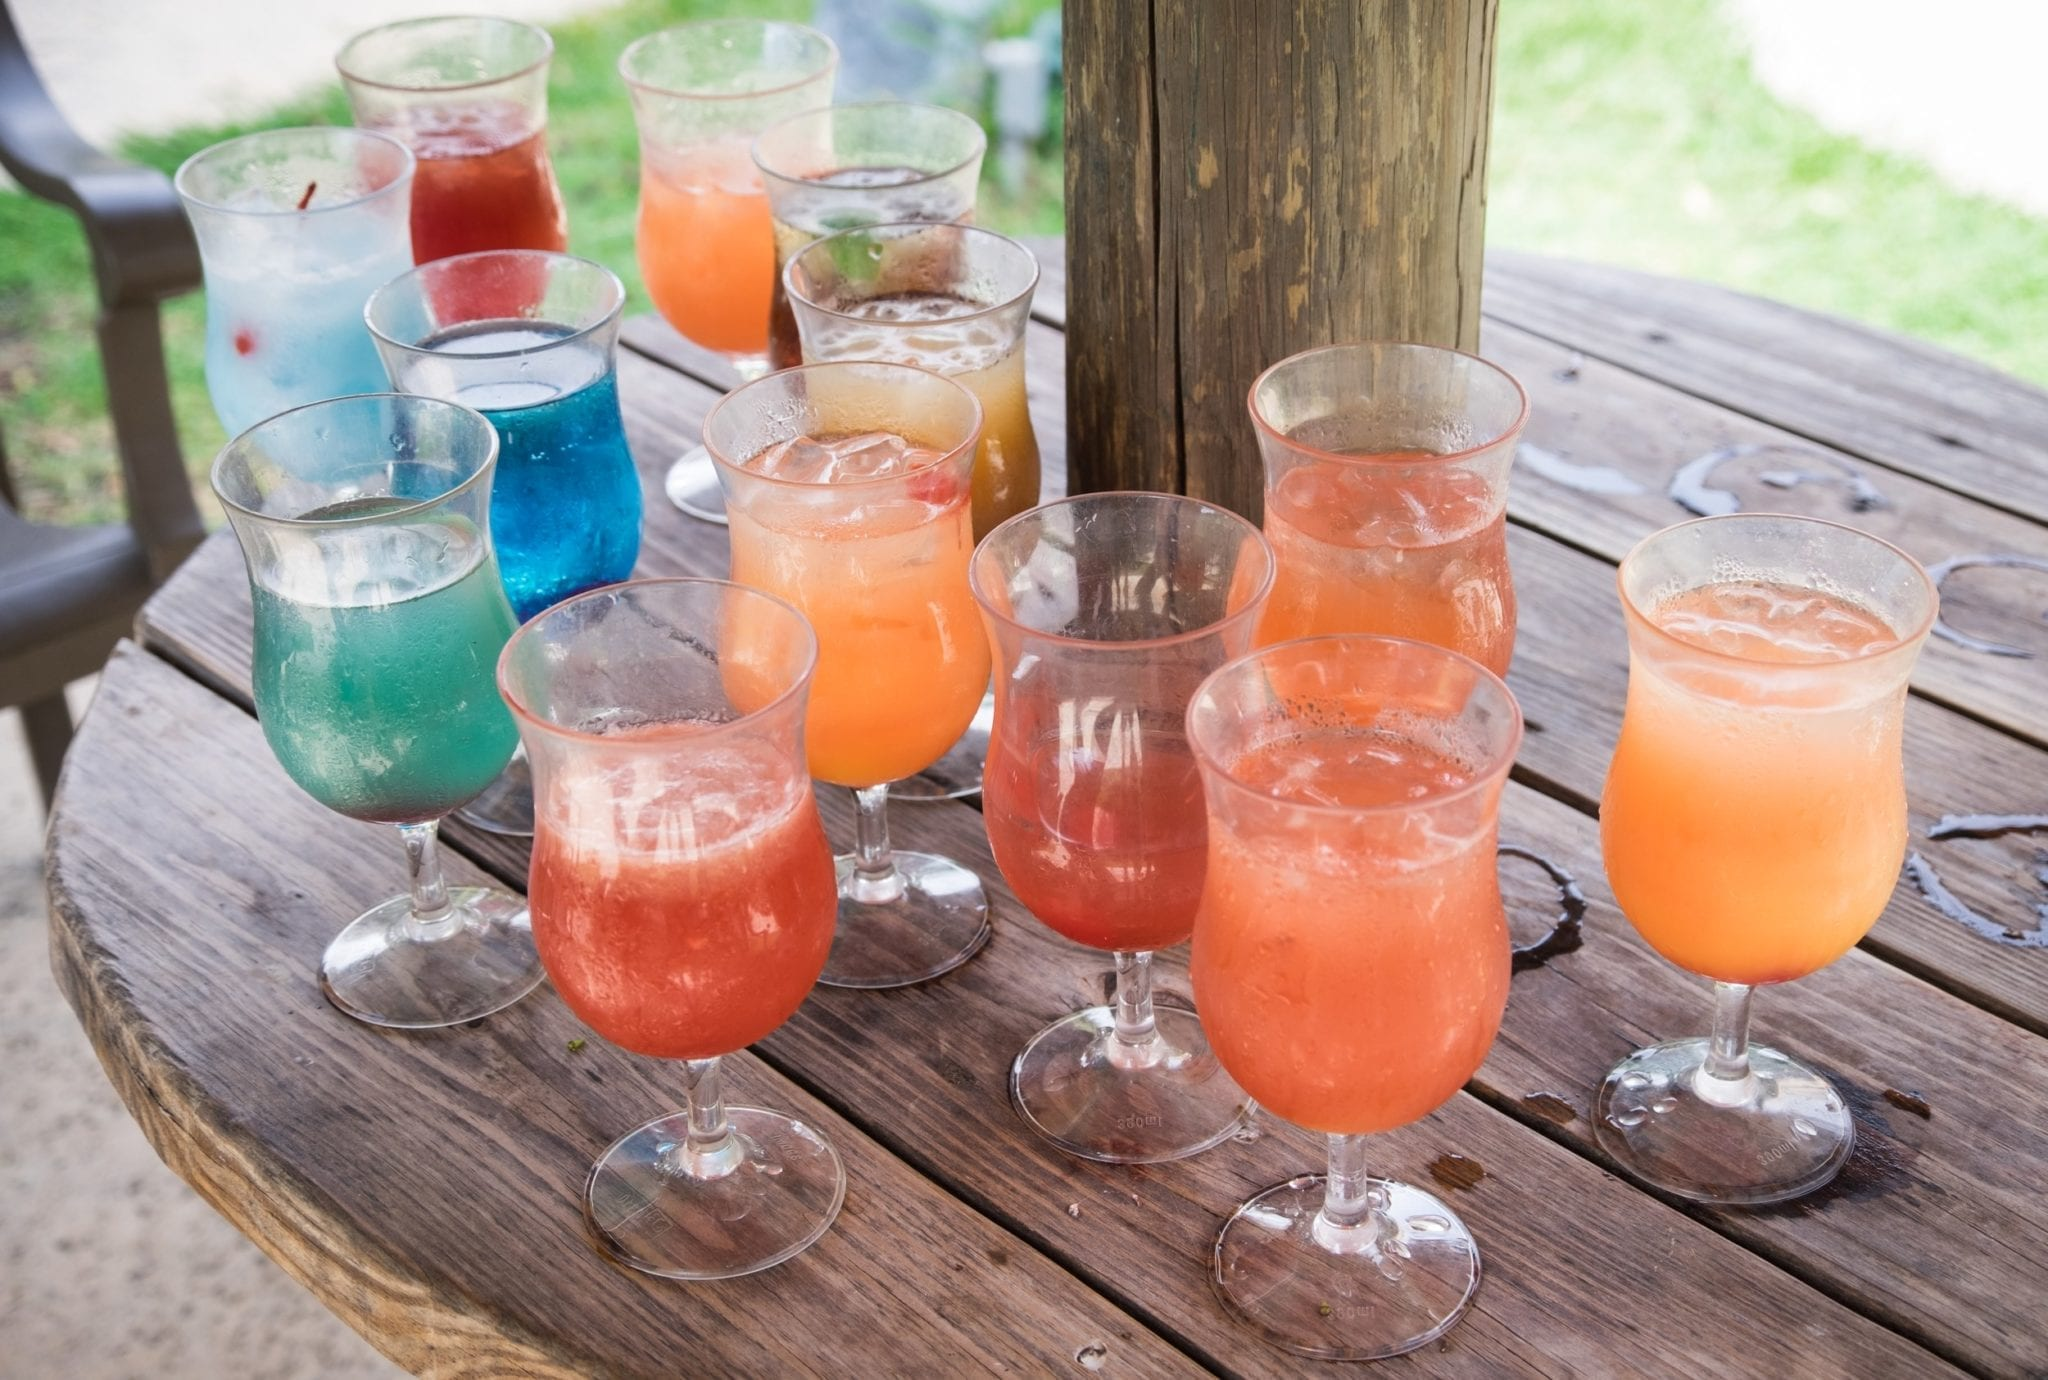 A wooden table topped with 13 various brightly colored cocktails in water goblets, some of them more finished than others.